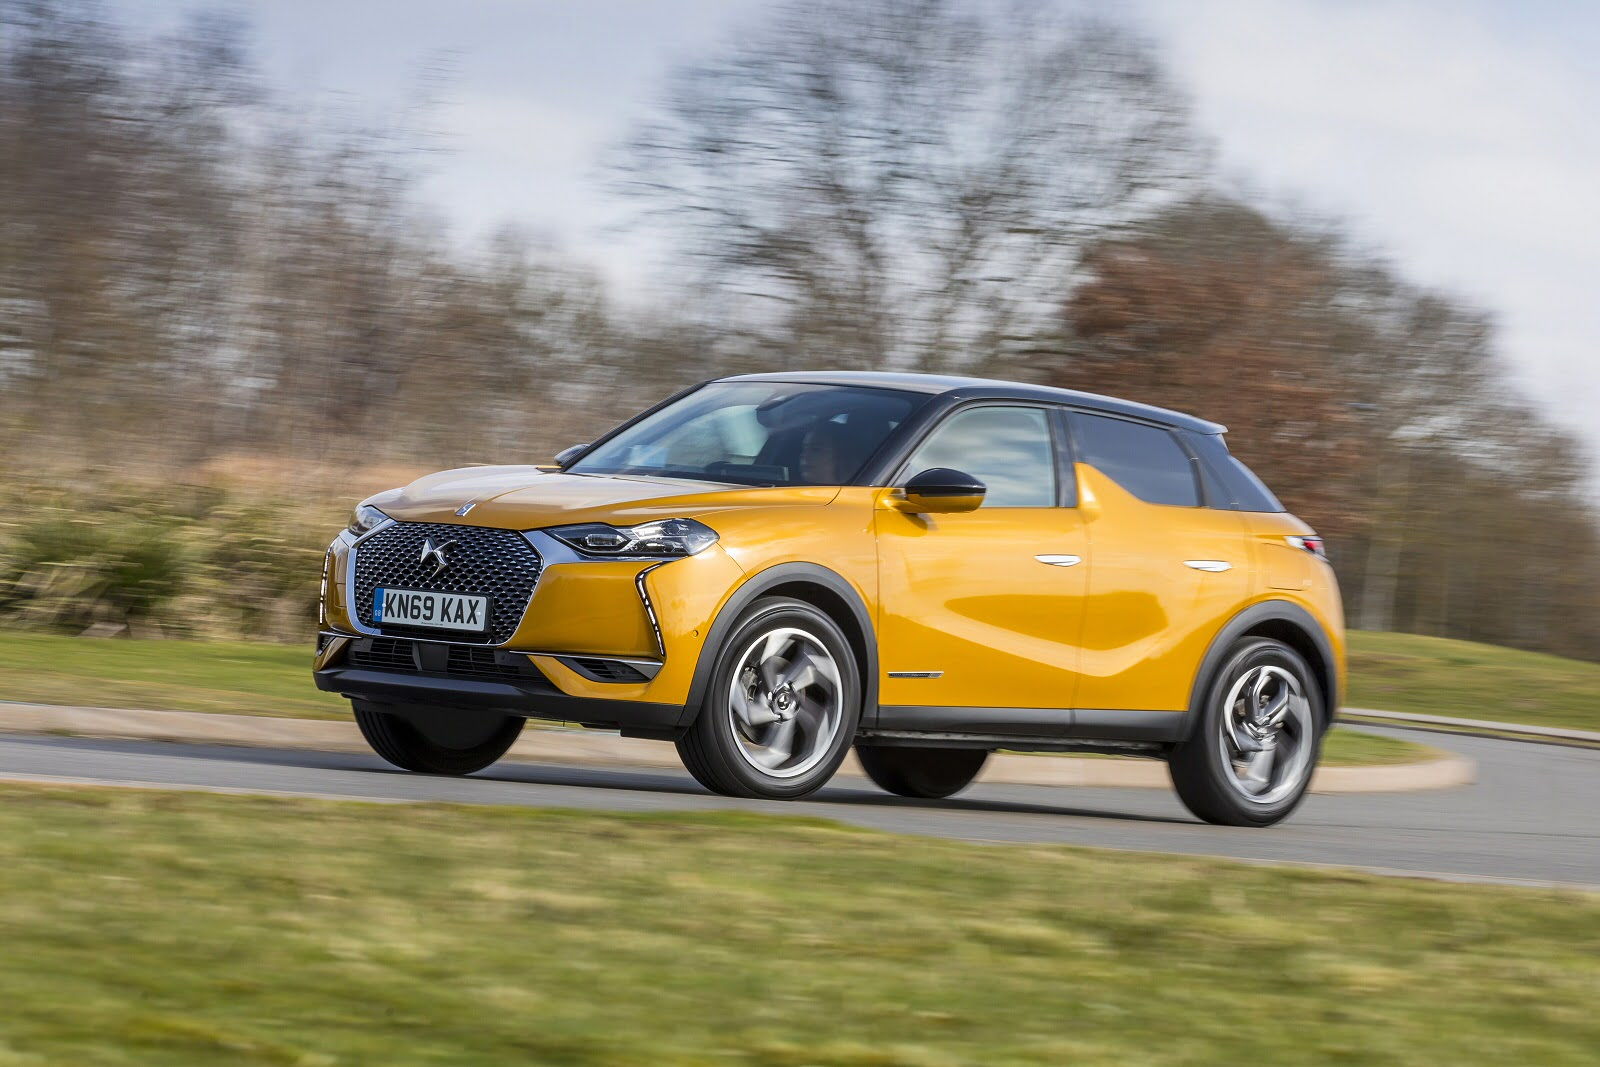 ds_3_electric_crossback_hatchback_96696.jpg - 100kW E-TENSE Performance Line + 50kWh 5dr Auto